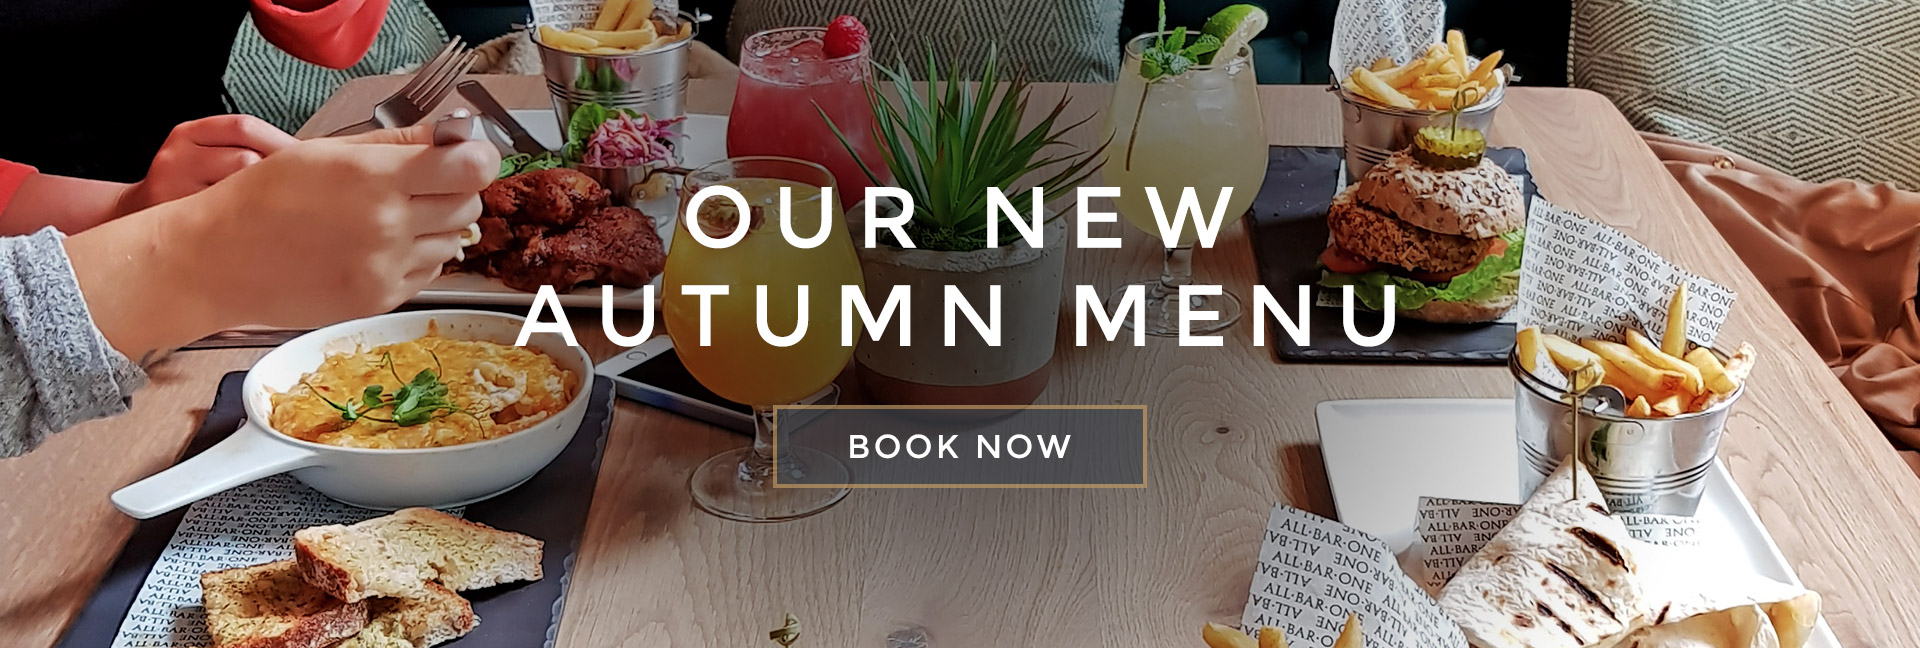 Our new Autumn menu at All Bar One Butlers Wharf - Book now